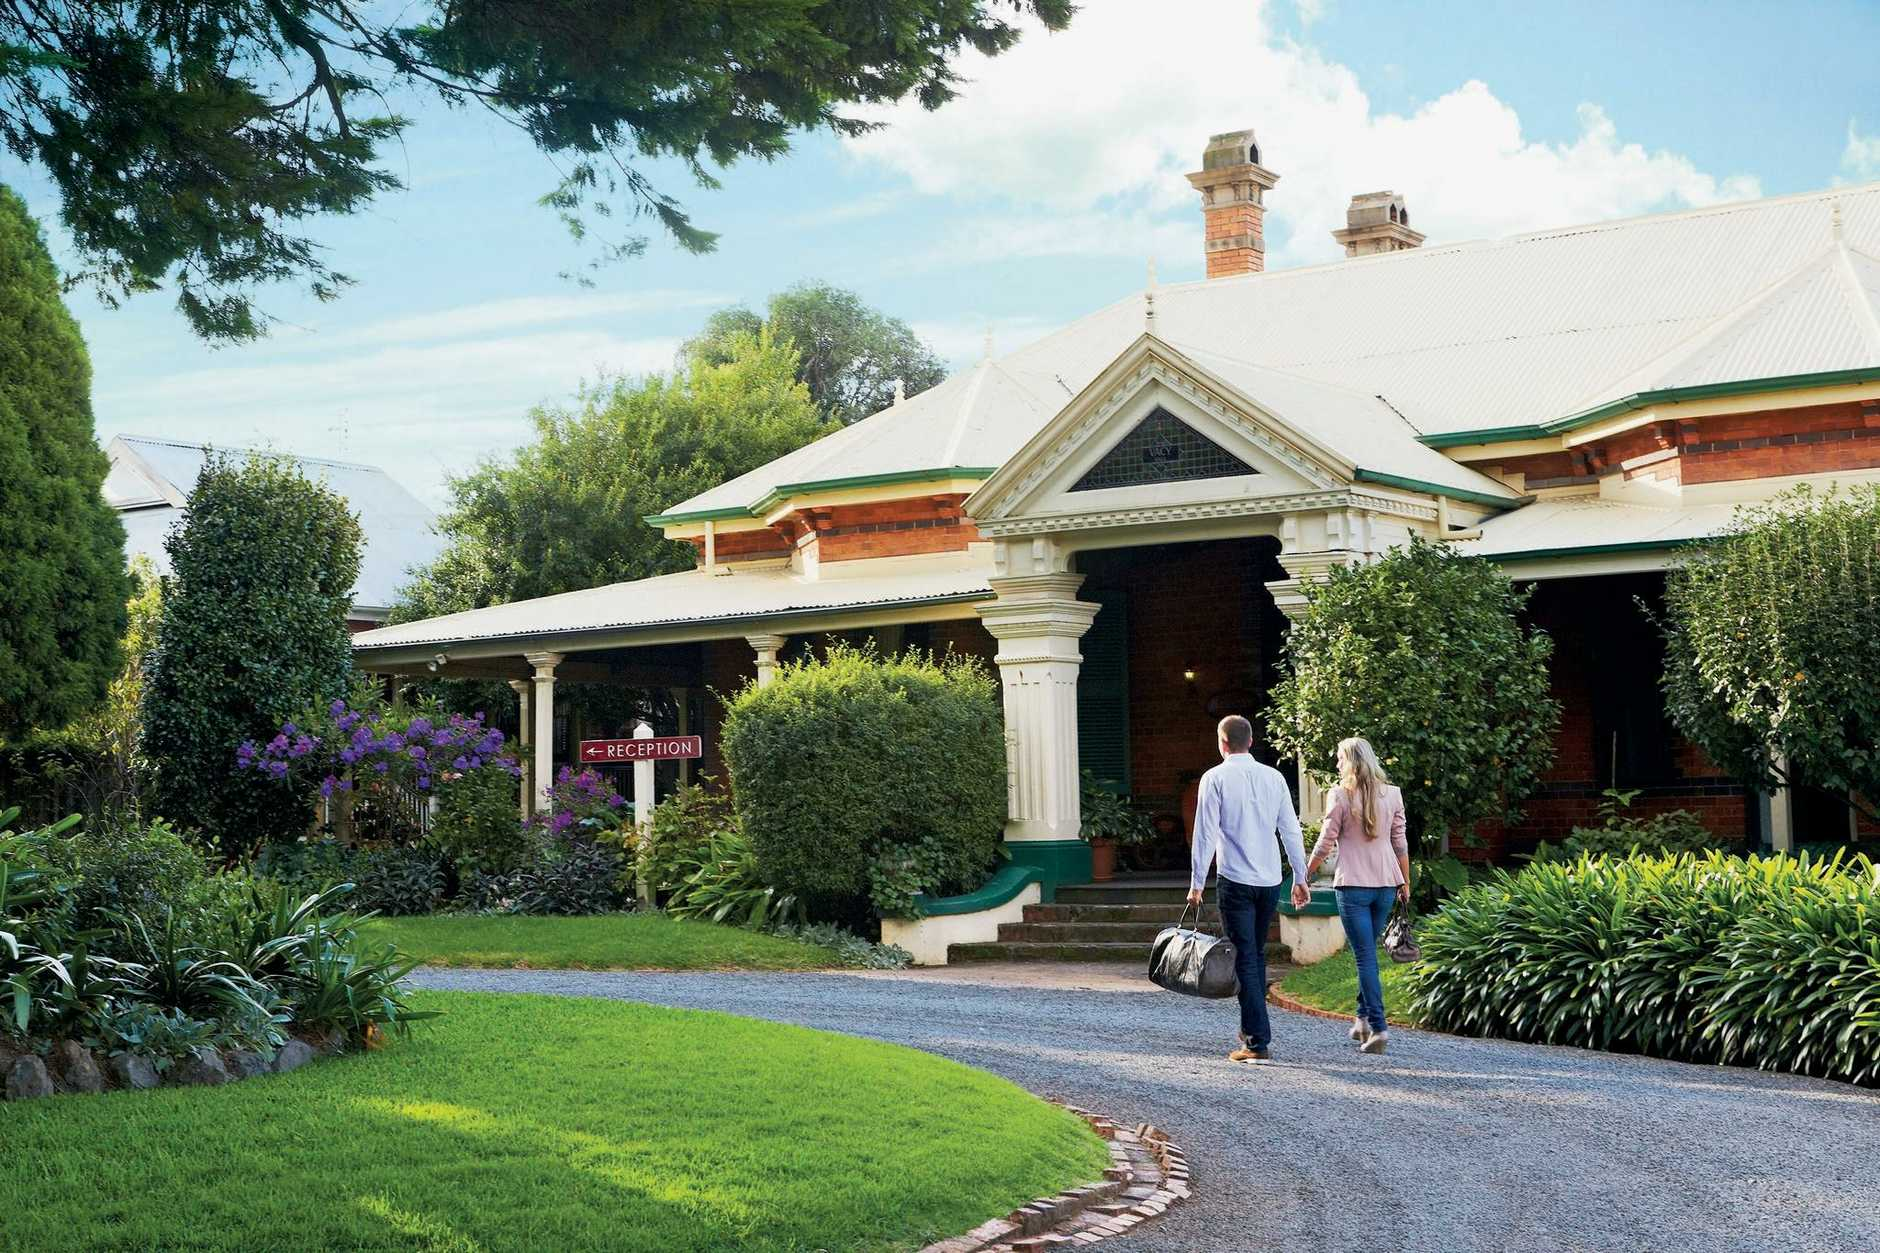 COUNTRY STAY: Vacy Hall, built in 1899, operates as a guesthouse today with the main section of the building refurbished in the late 1980s into guestrooms.    PIC: Tourism & Events Queensland